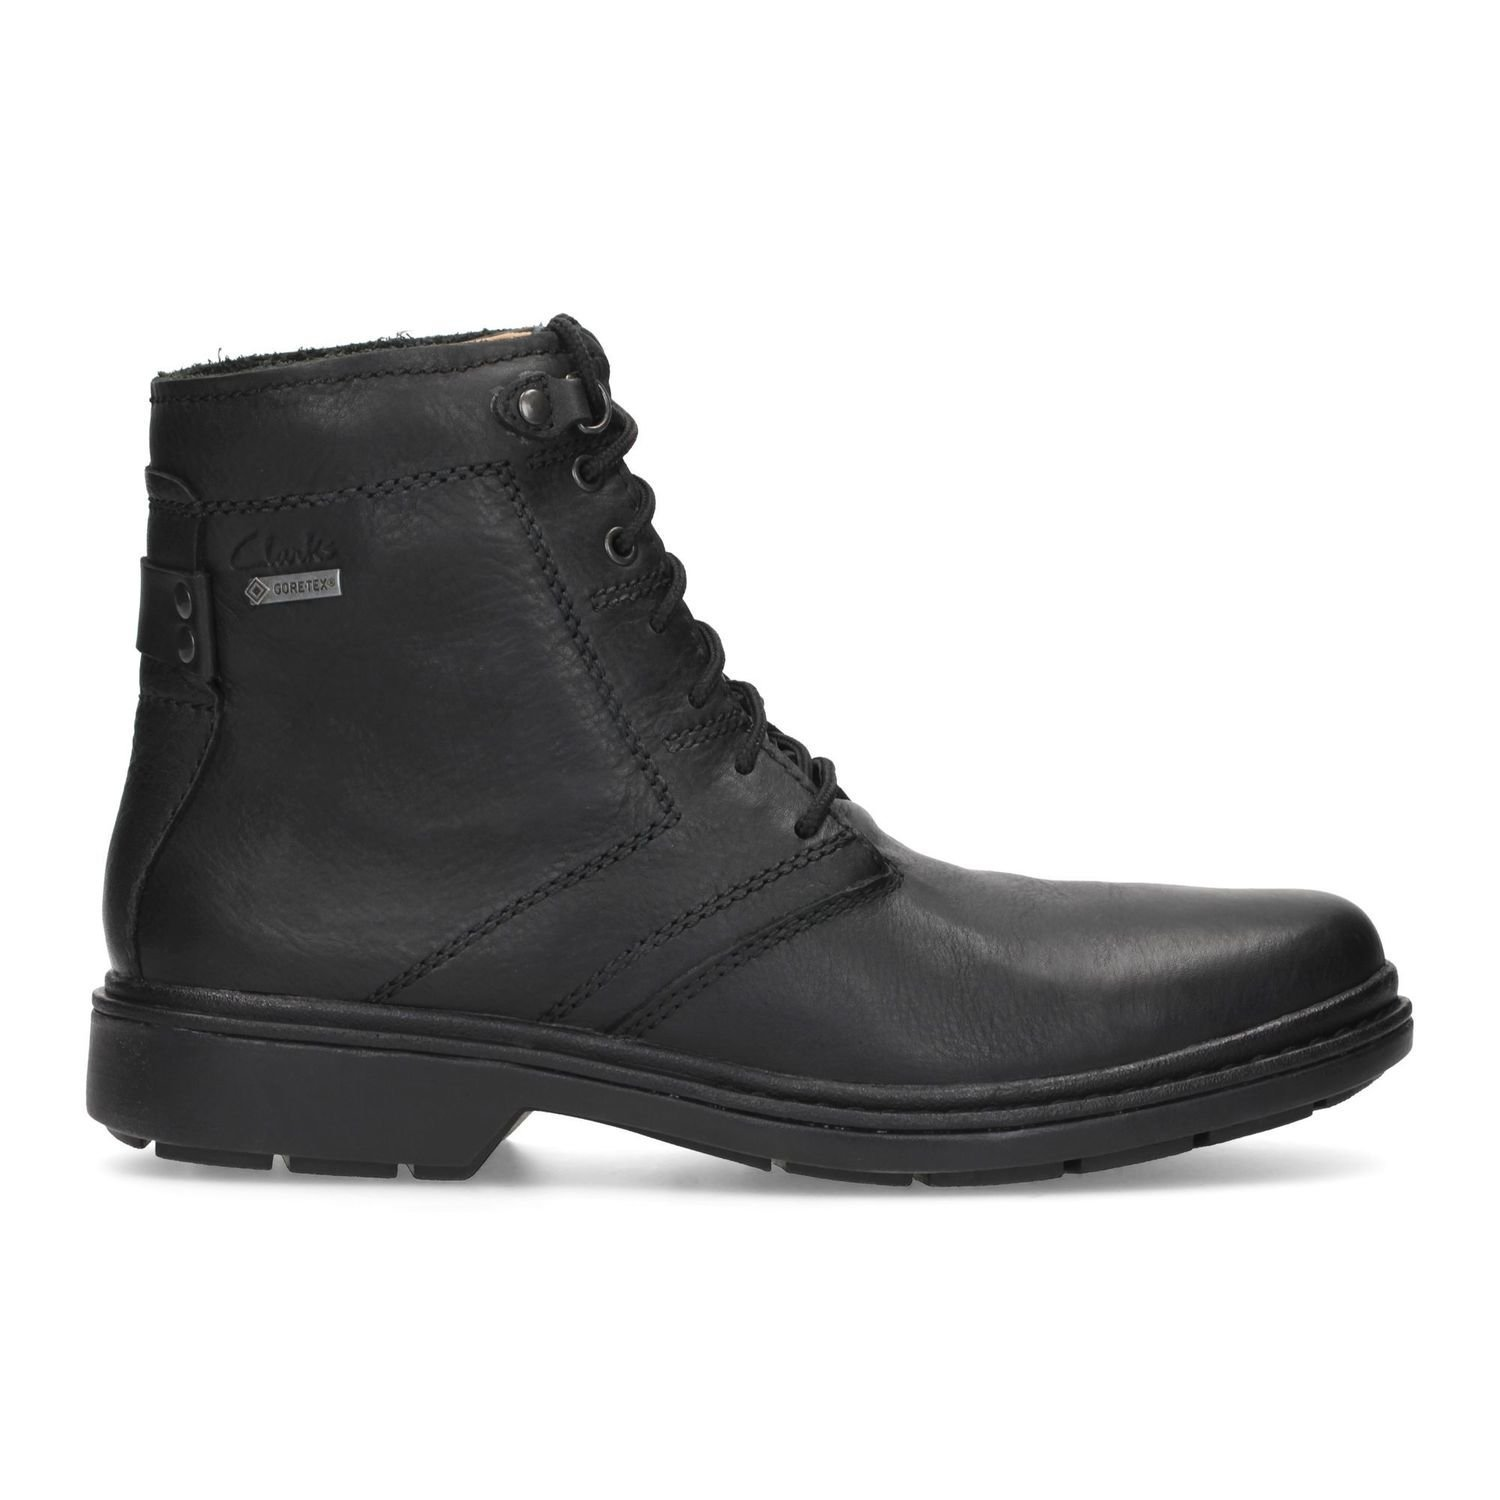 Botas Rockie Co GTX Negro Impermeable TN-2380087